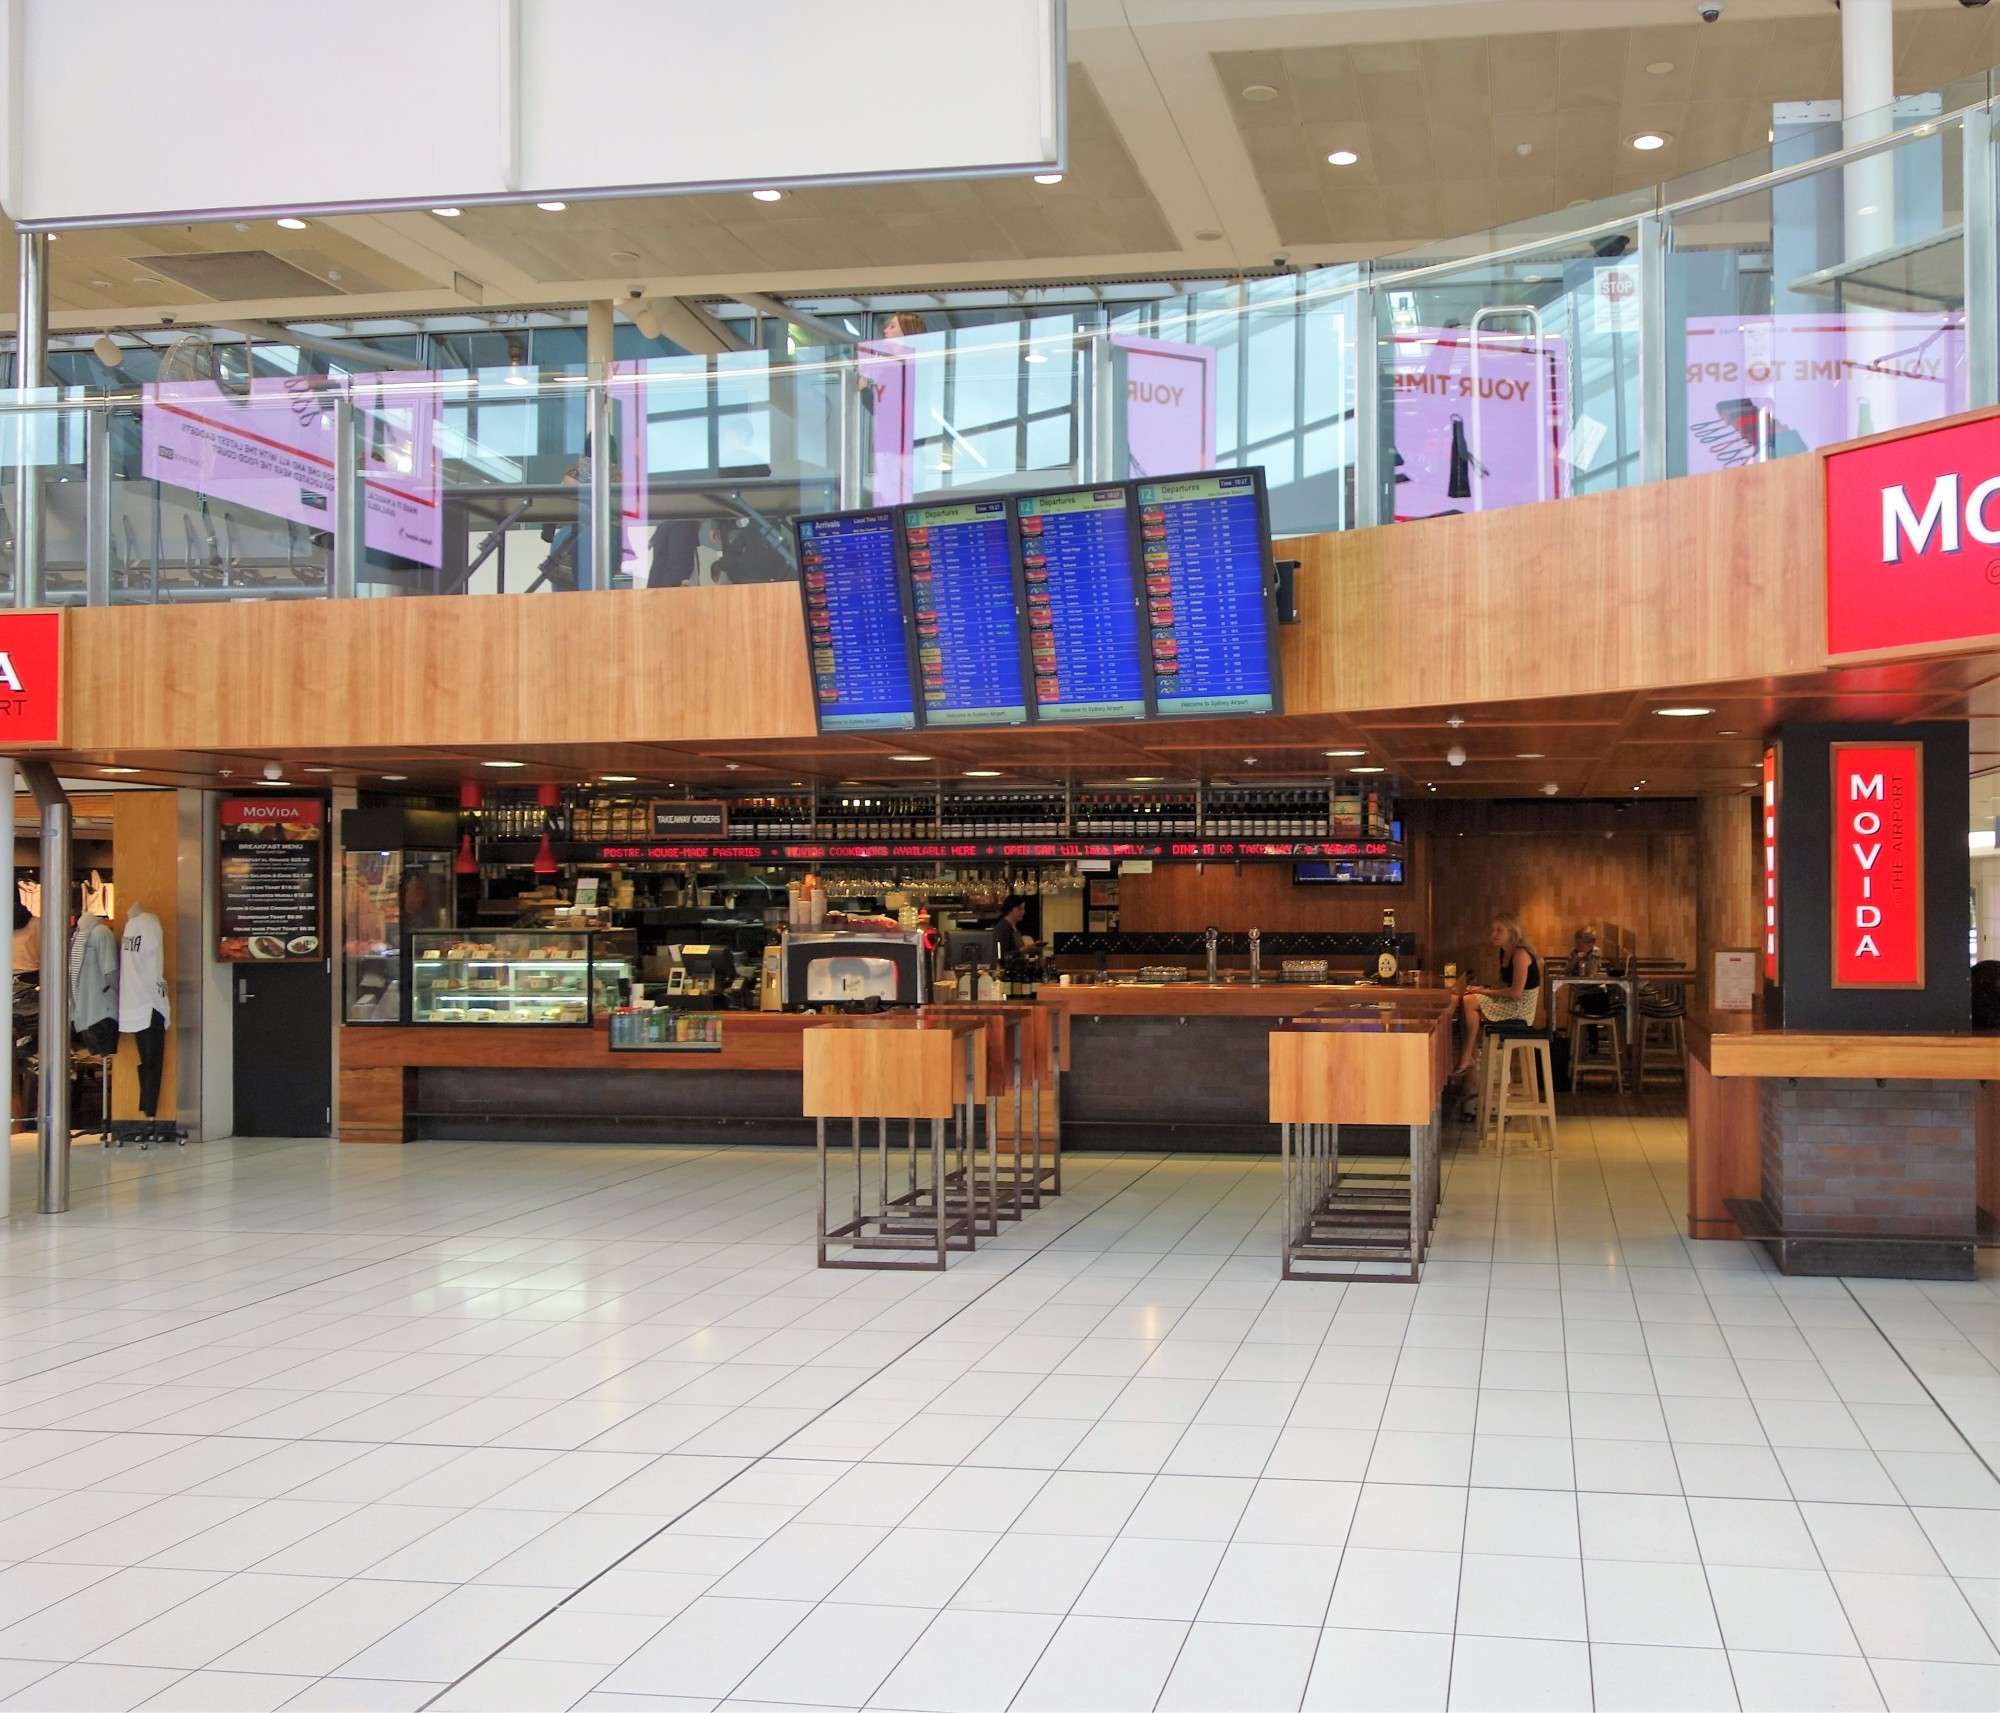 Sydney Airport Shops Syd Movida Reviews Photos Terminal 2 Domestic Sydney